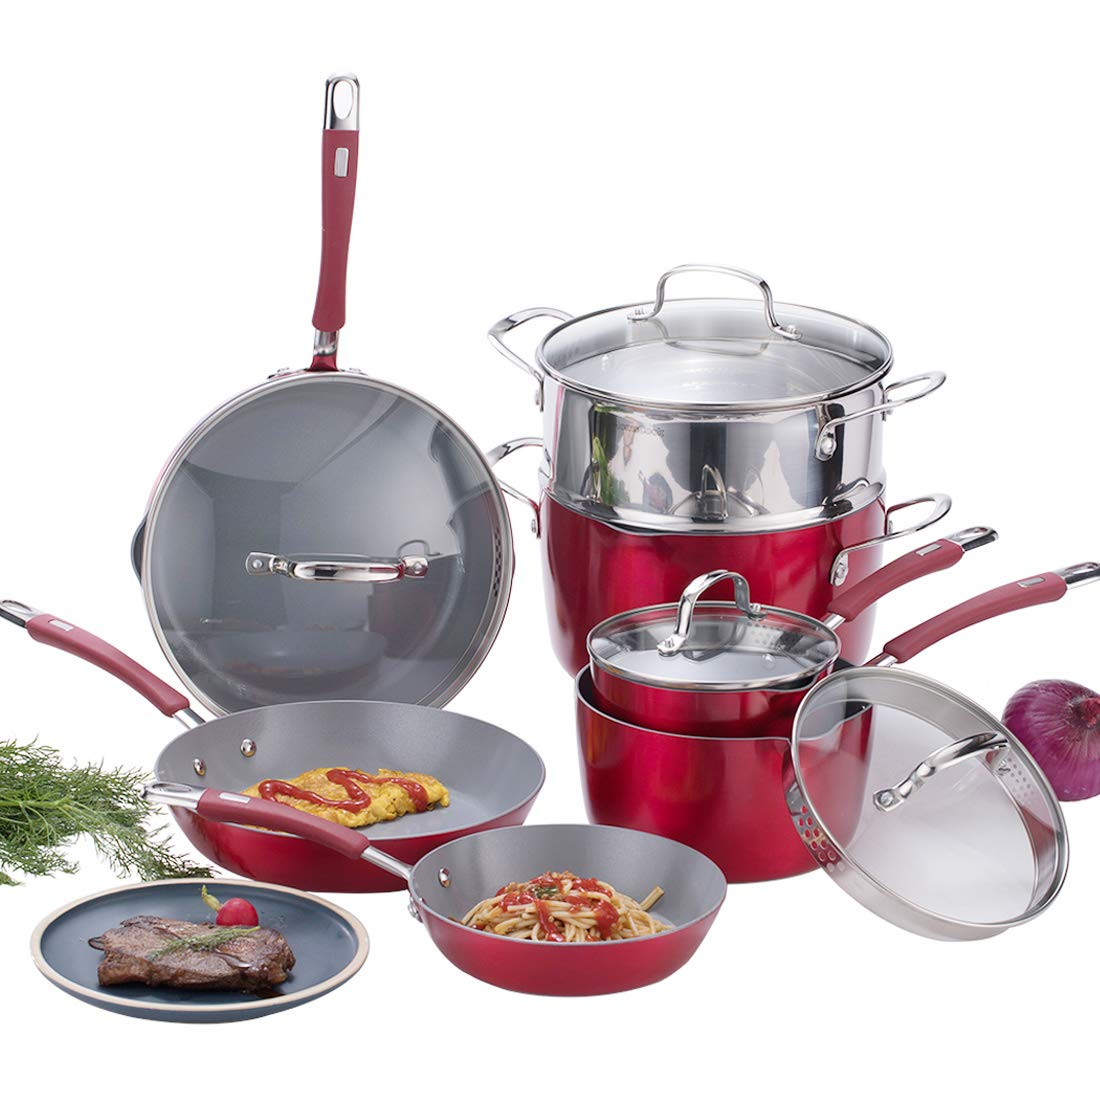 Momscook Aluminum Nonstick Ceramic Coating Cookware Set with Three Nonstick-Suitable Nylon Cooking Tools, 14-Piece, Cranberry Red by Momscook (Image #1)